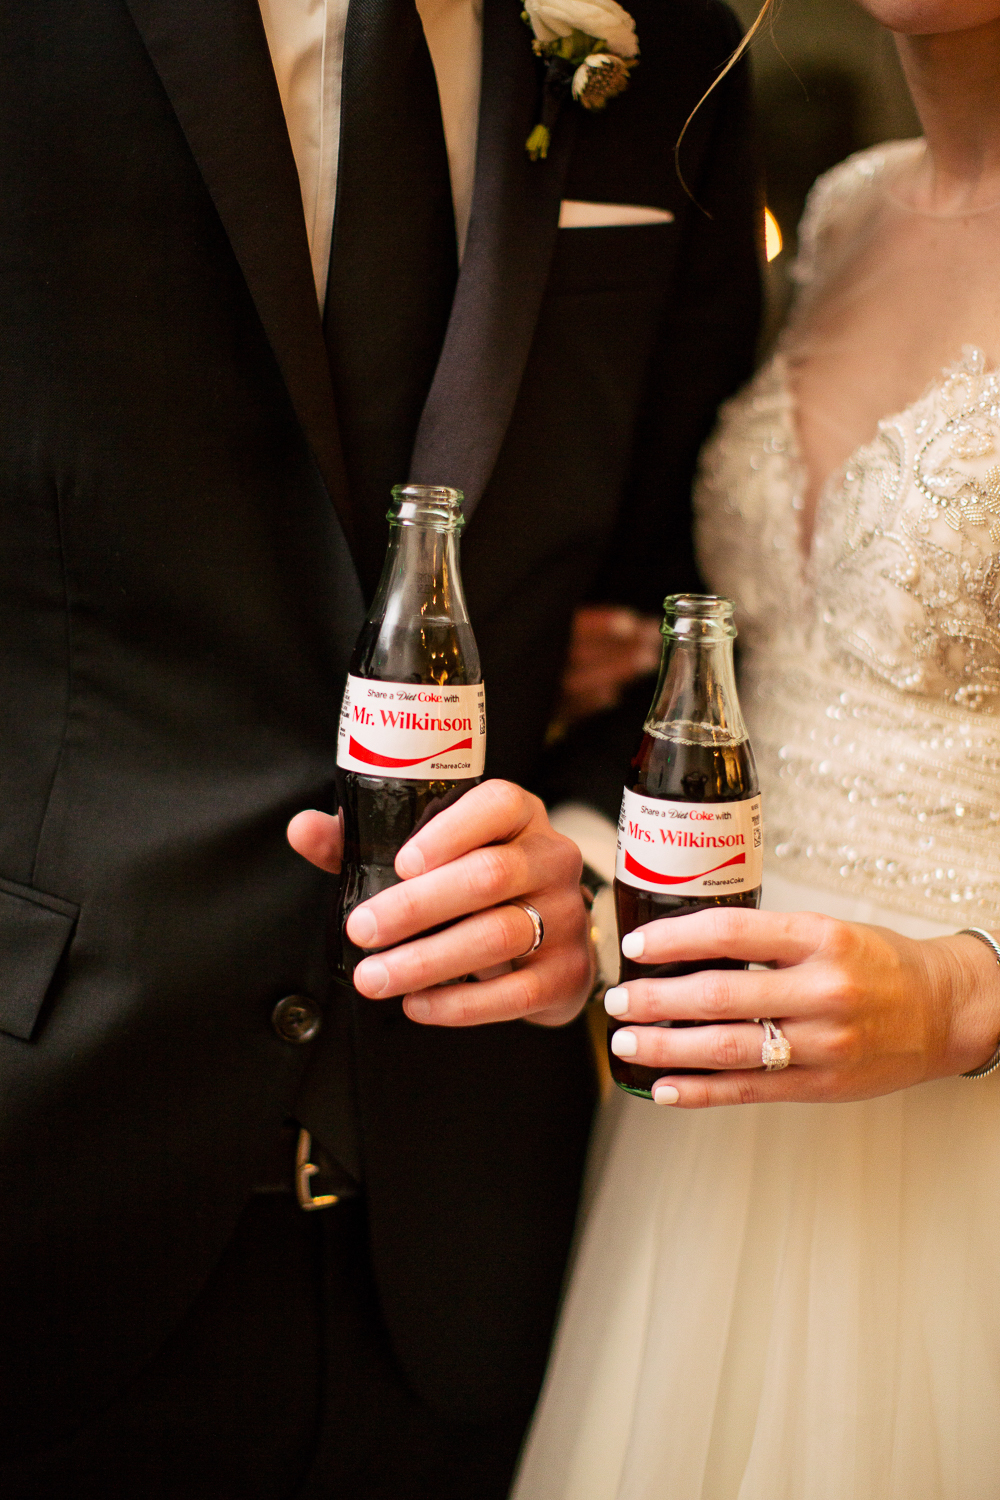 Diet Coke wedding favors